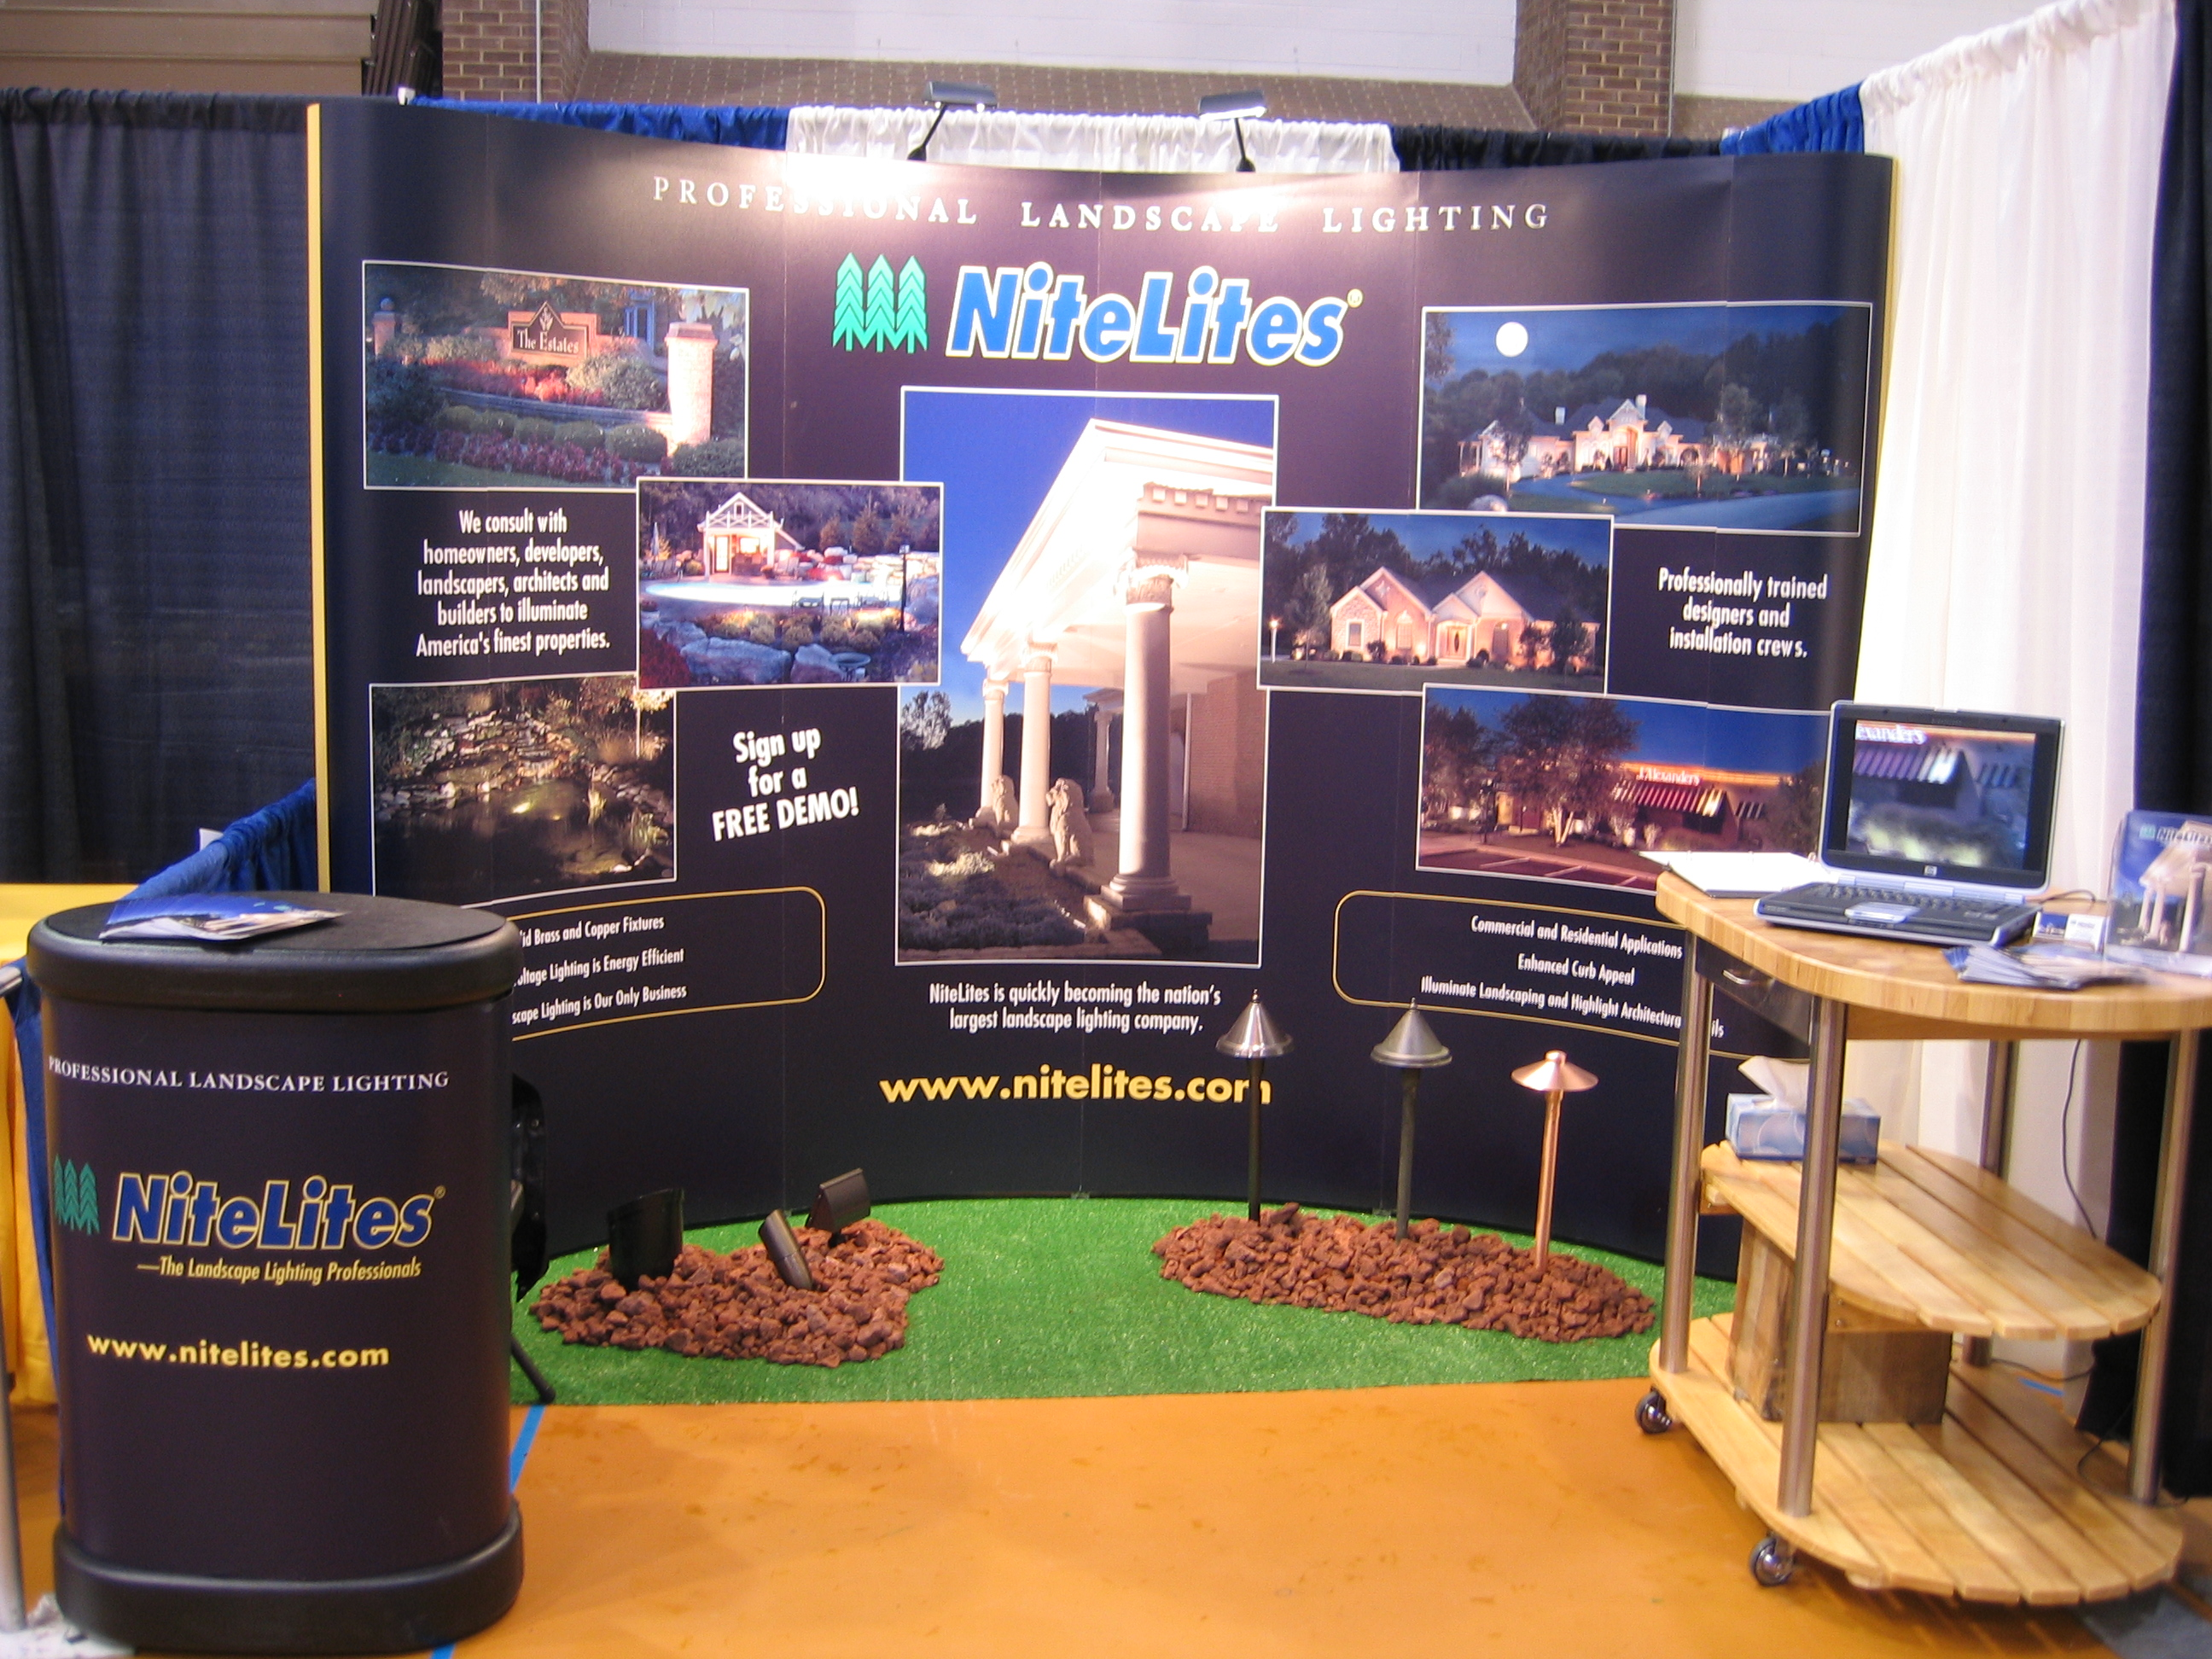 nitelites outdoor lighting trade show boothnitelites the outdoor lighting professionals trade show booth nitelites logo - Home And Garden Trade Shows